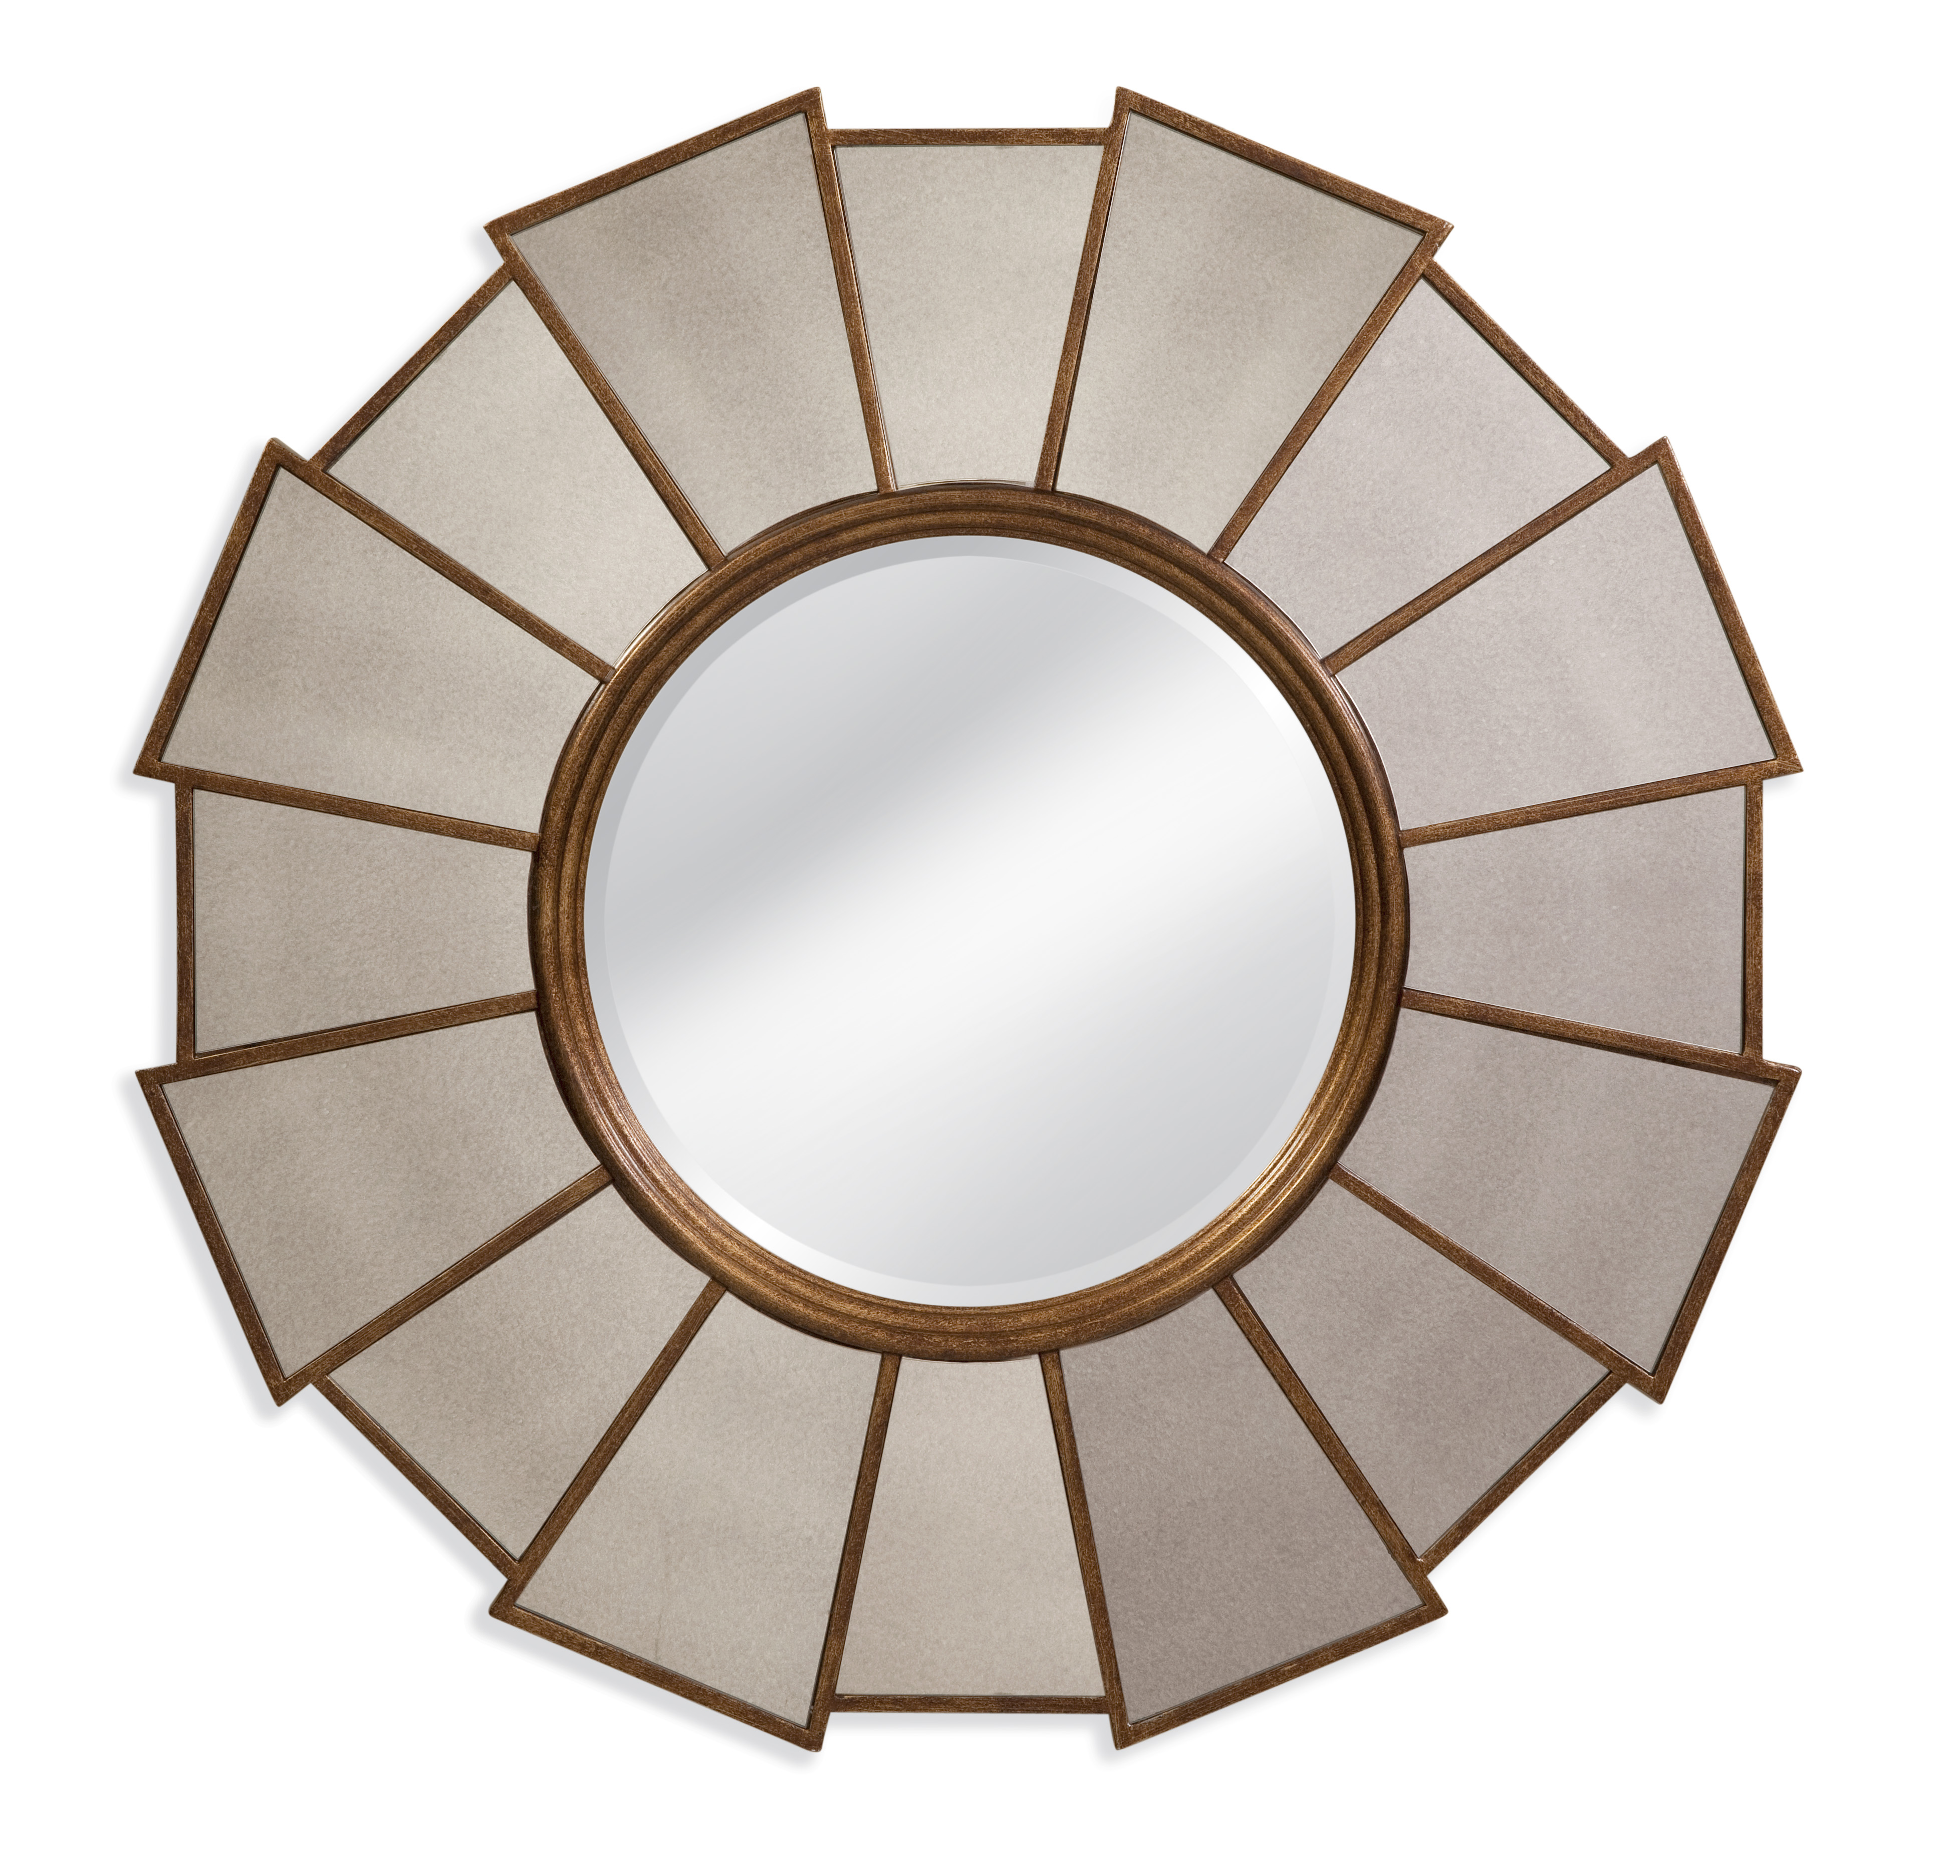 twou0027s company gold leaf round wall mirrors set of 3